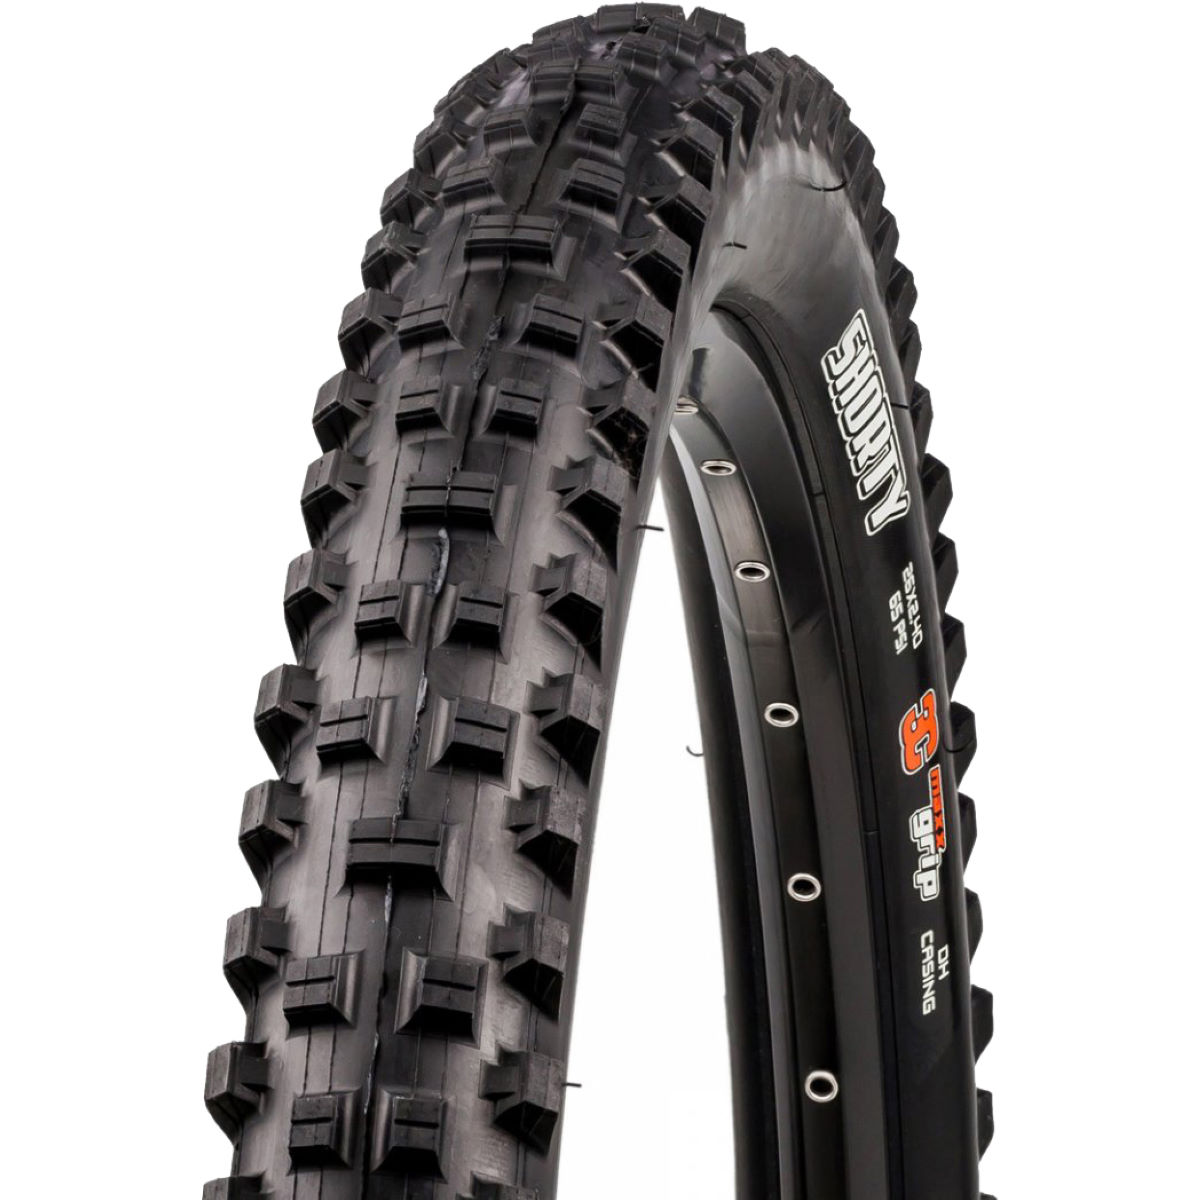 Pneu VTT Maxxis Shorty Wired - 2.4' 26' Noir Pneus